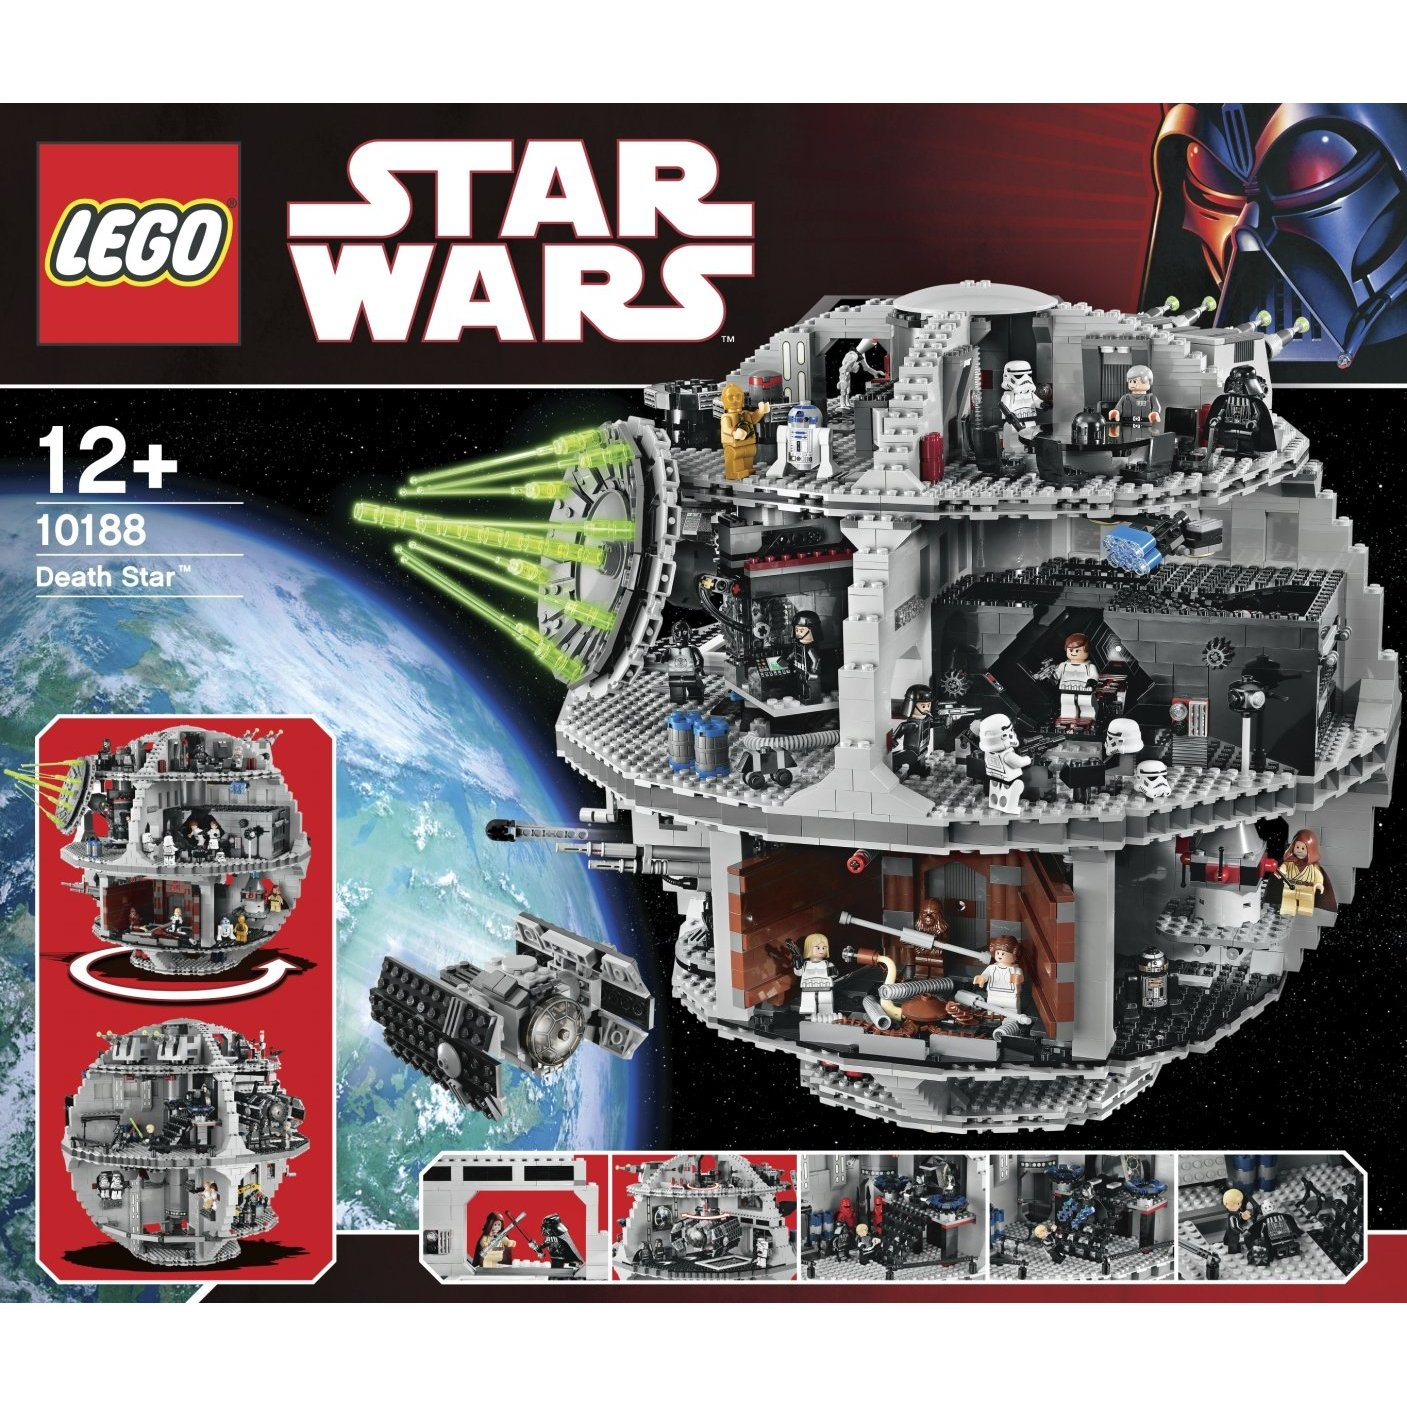 Calendar Creator Best Buy Calendar Maker Calendar Creator For Word And Excel Lego Star Wars Death Star Toy Brix And Blox